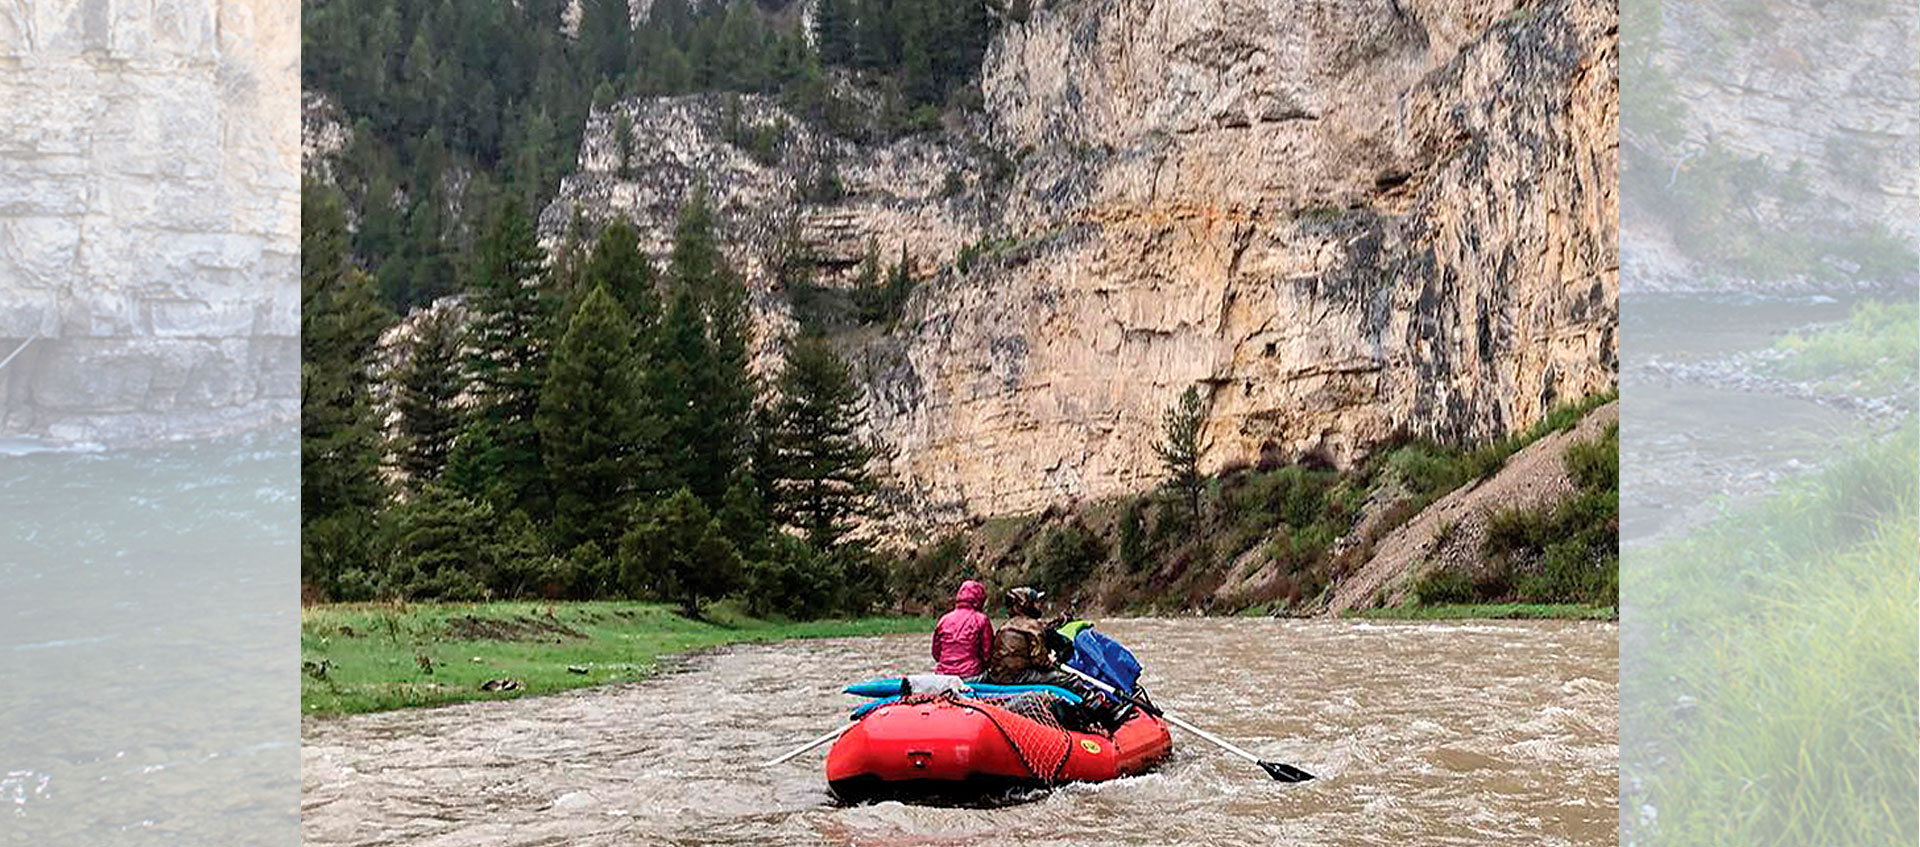 Fly Fishing Float Trip on the Smith River, Montana